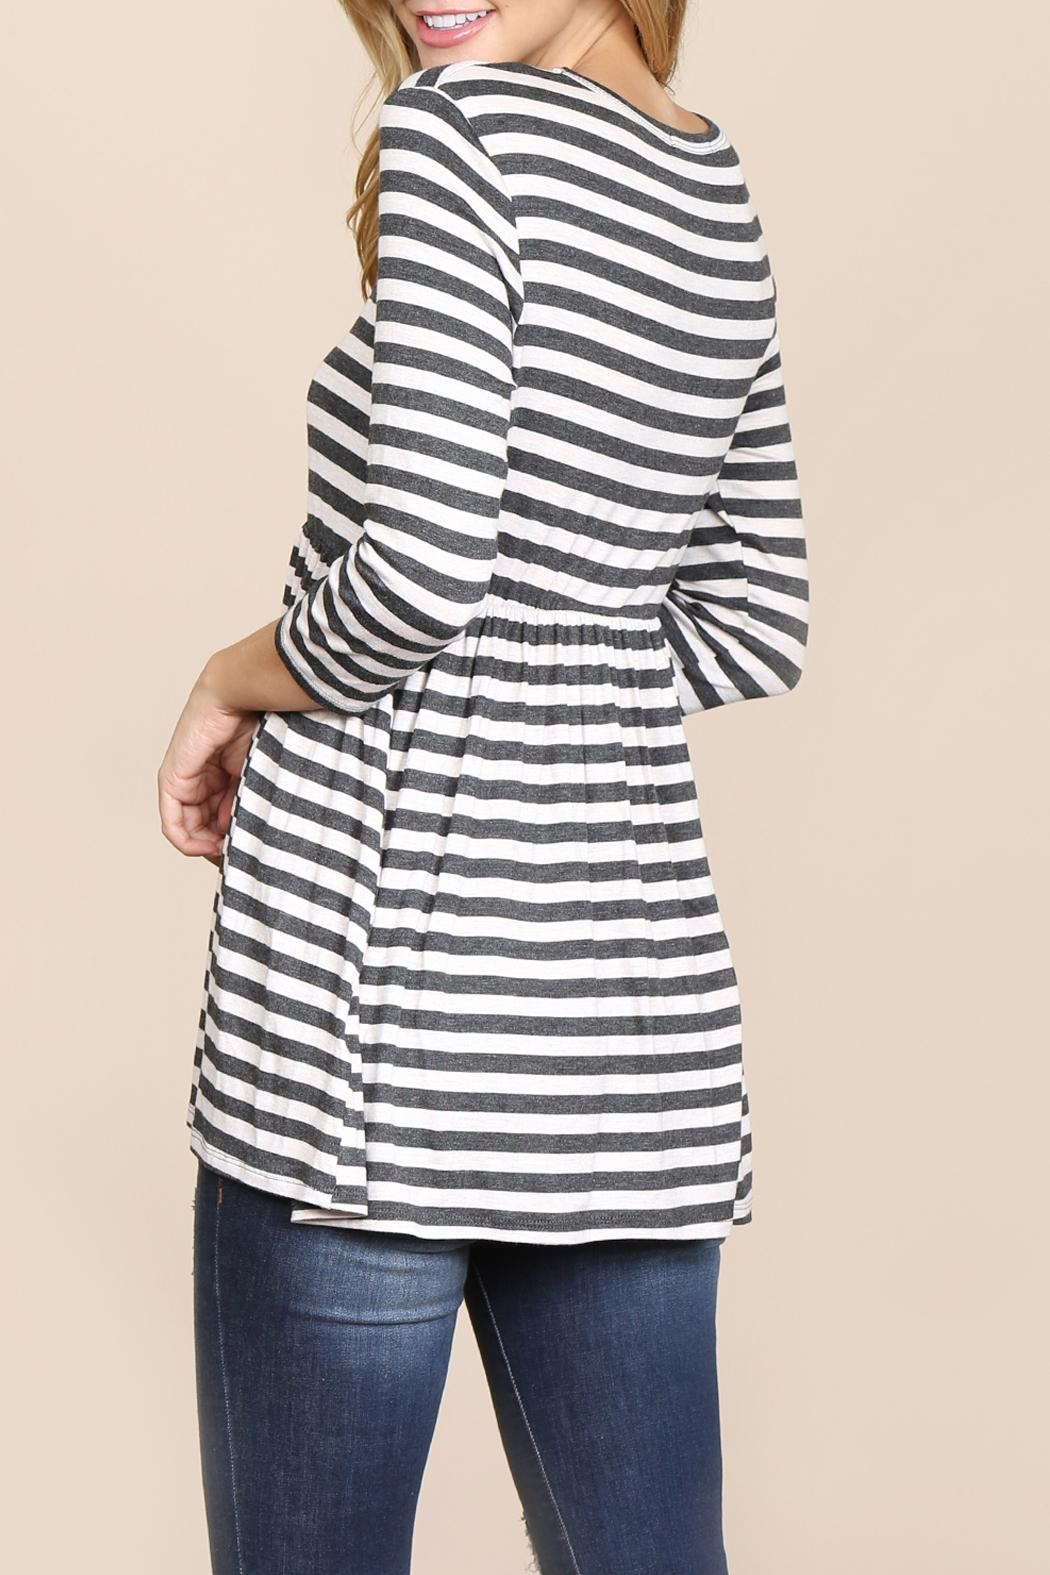 Riah Fashion Everyday-Half-Inch Striped-Tunic - Side Cropped Image